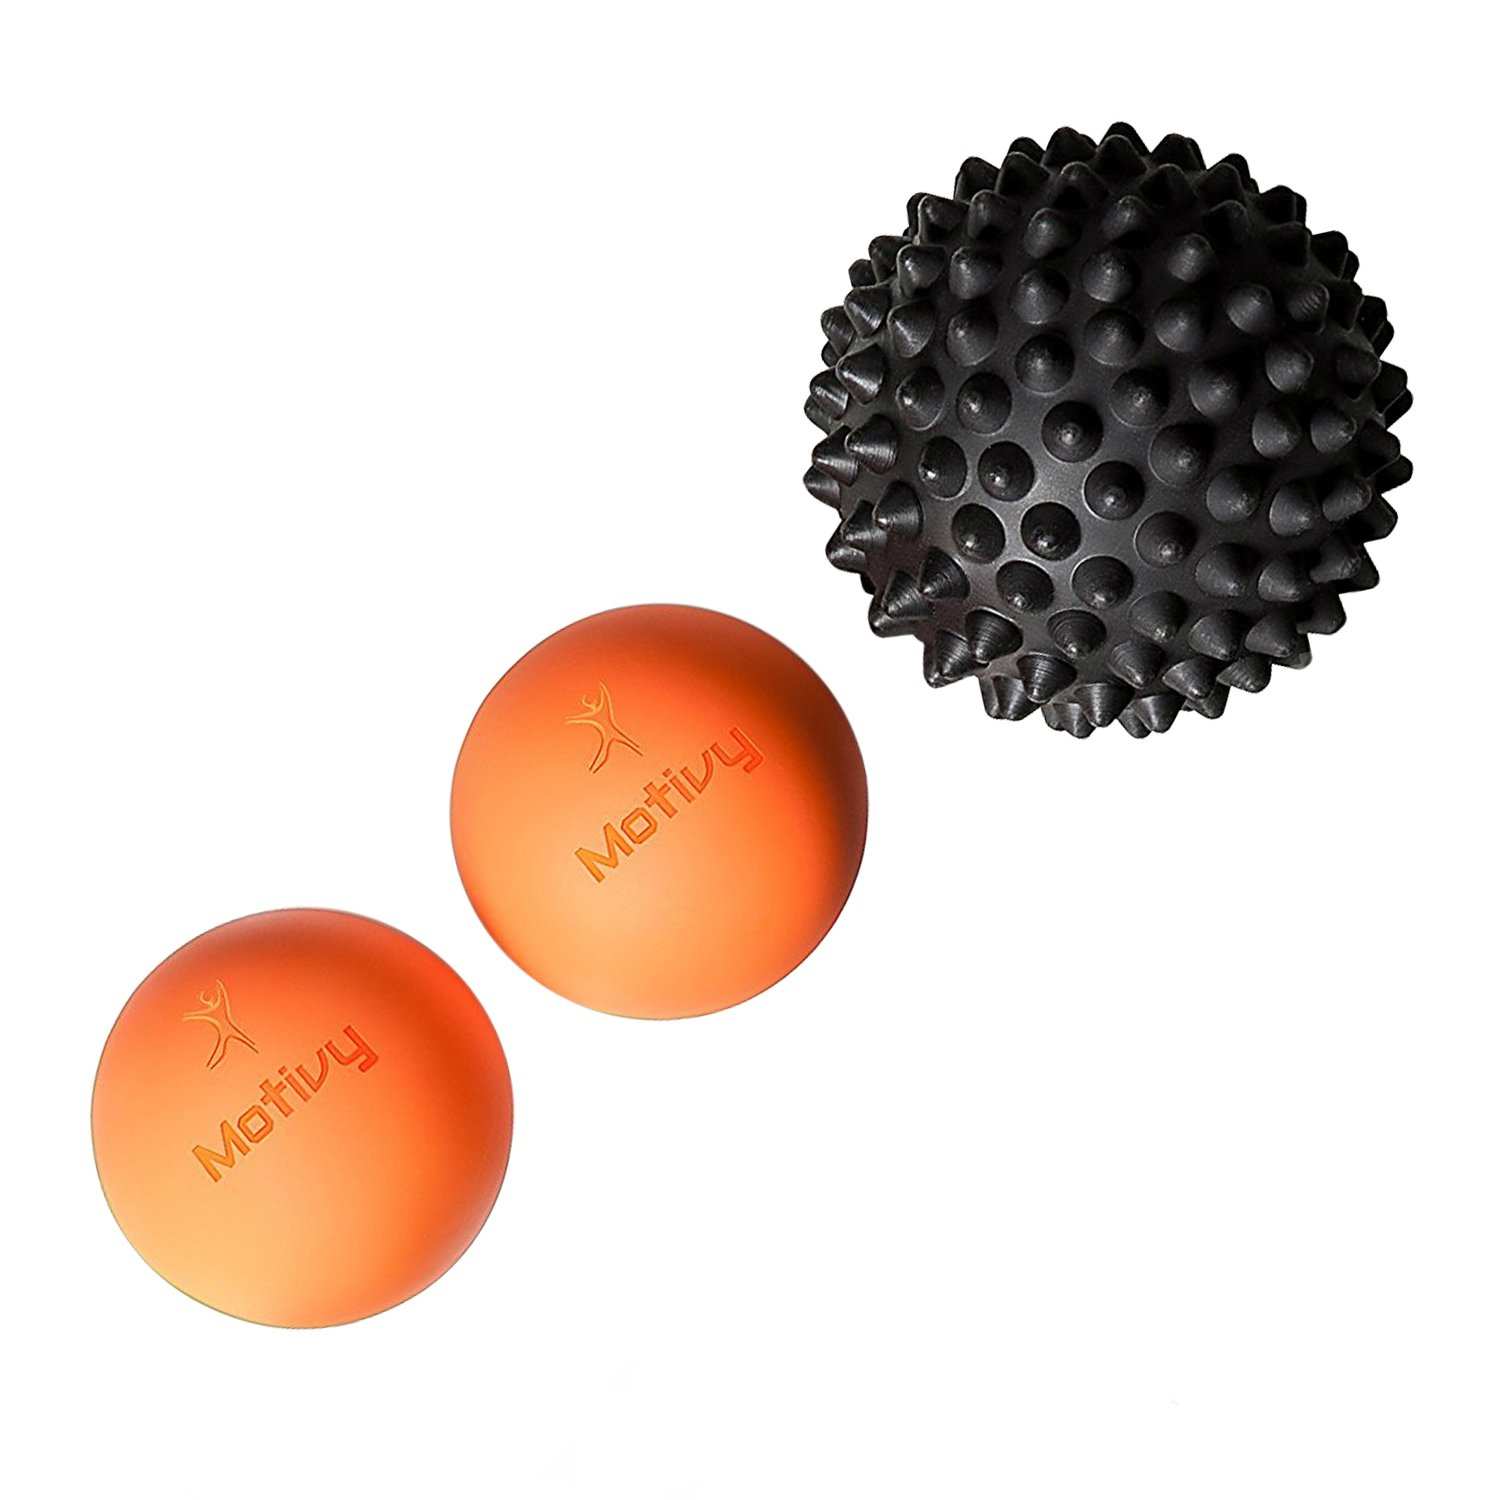 Foot Massage Ball (3) – 2 Lacrosse Deep Tissue Massage Balls & Spike Ball (1) – Ideal Myofascial Release & Trigger Point Activation Tool – Ideal for foot, Shoulder, Back, etc – Bonus Bag